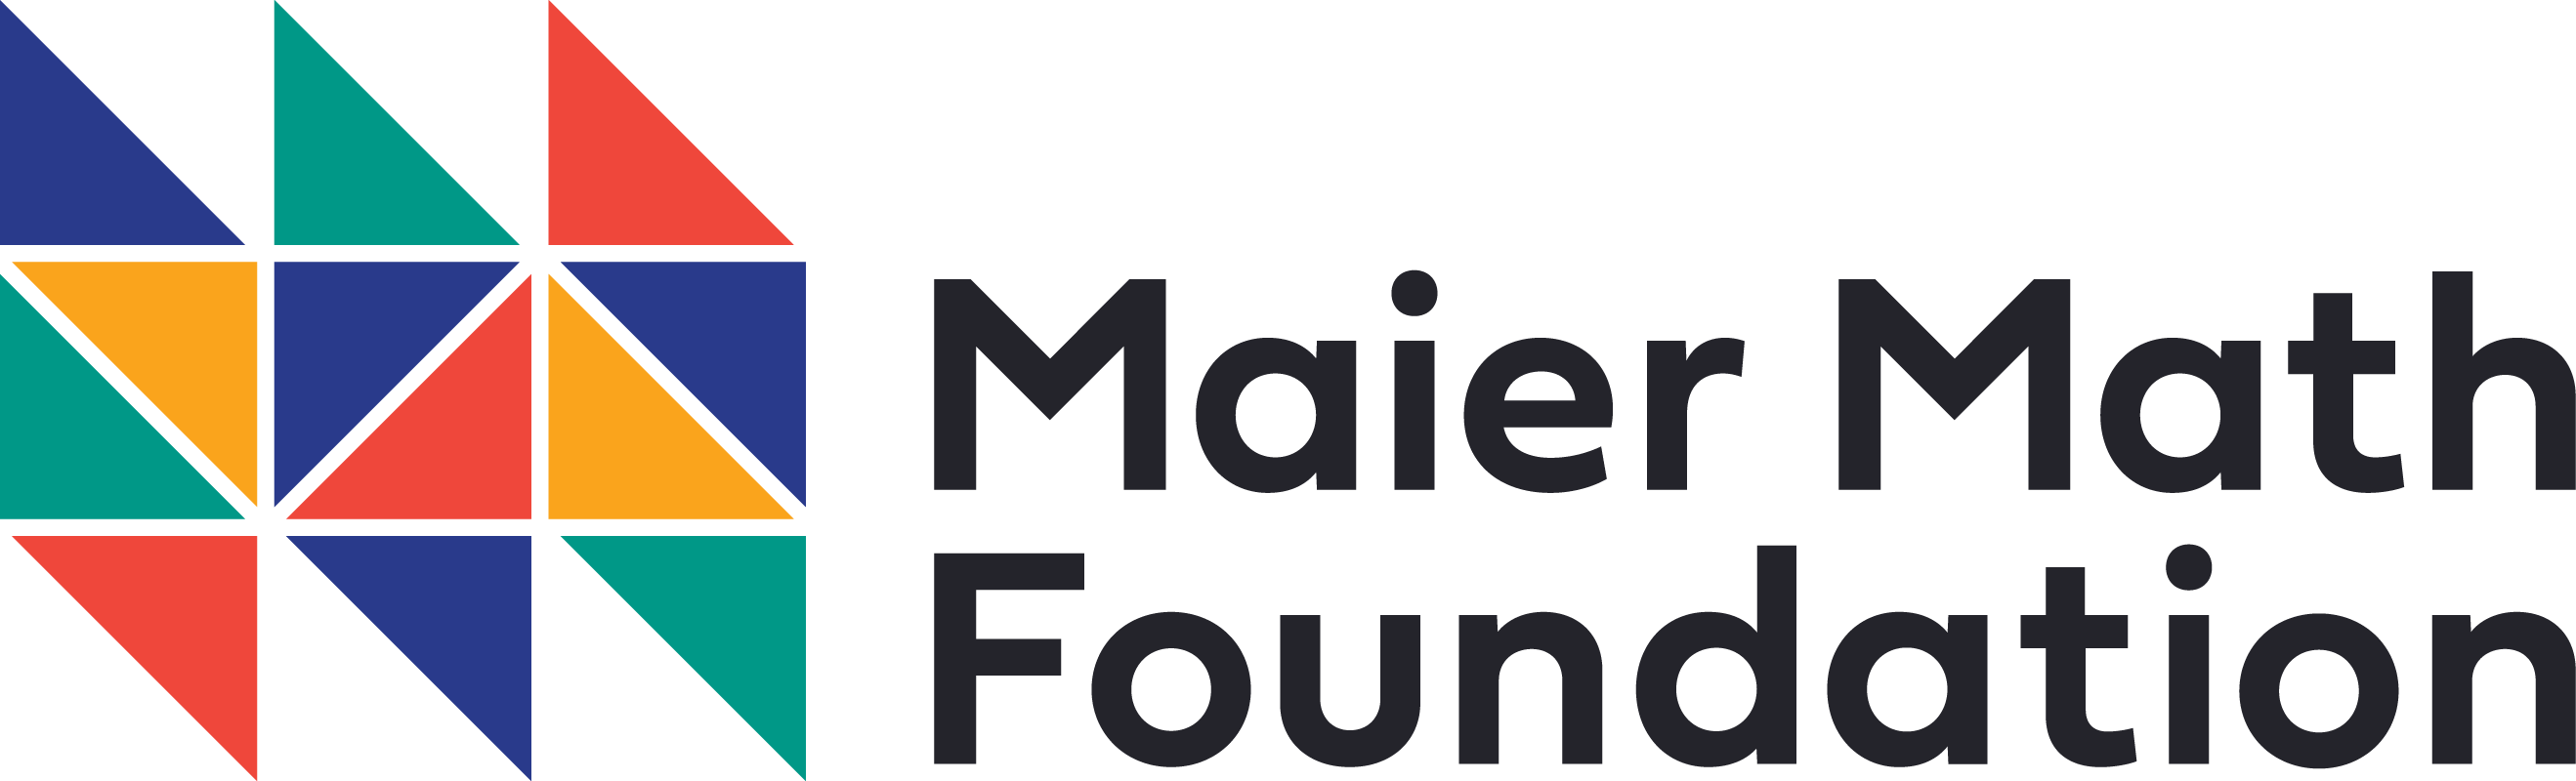 Maier Math Foundation logo